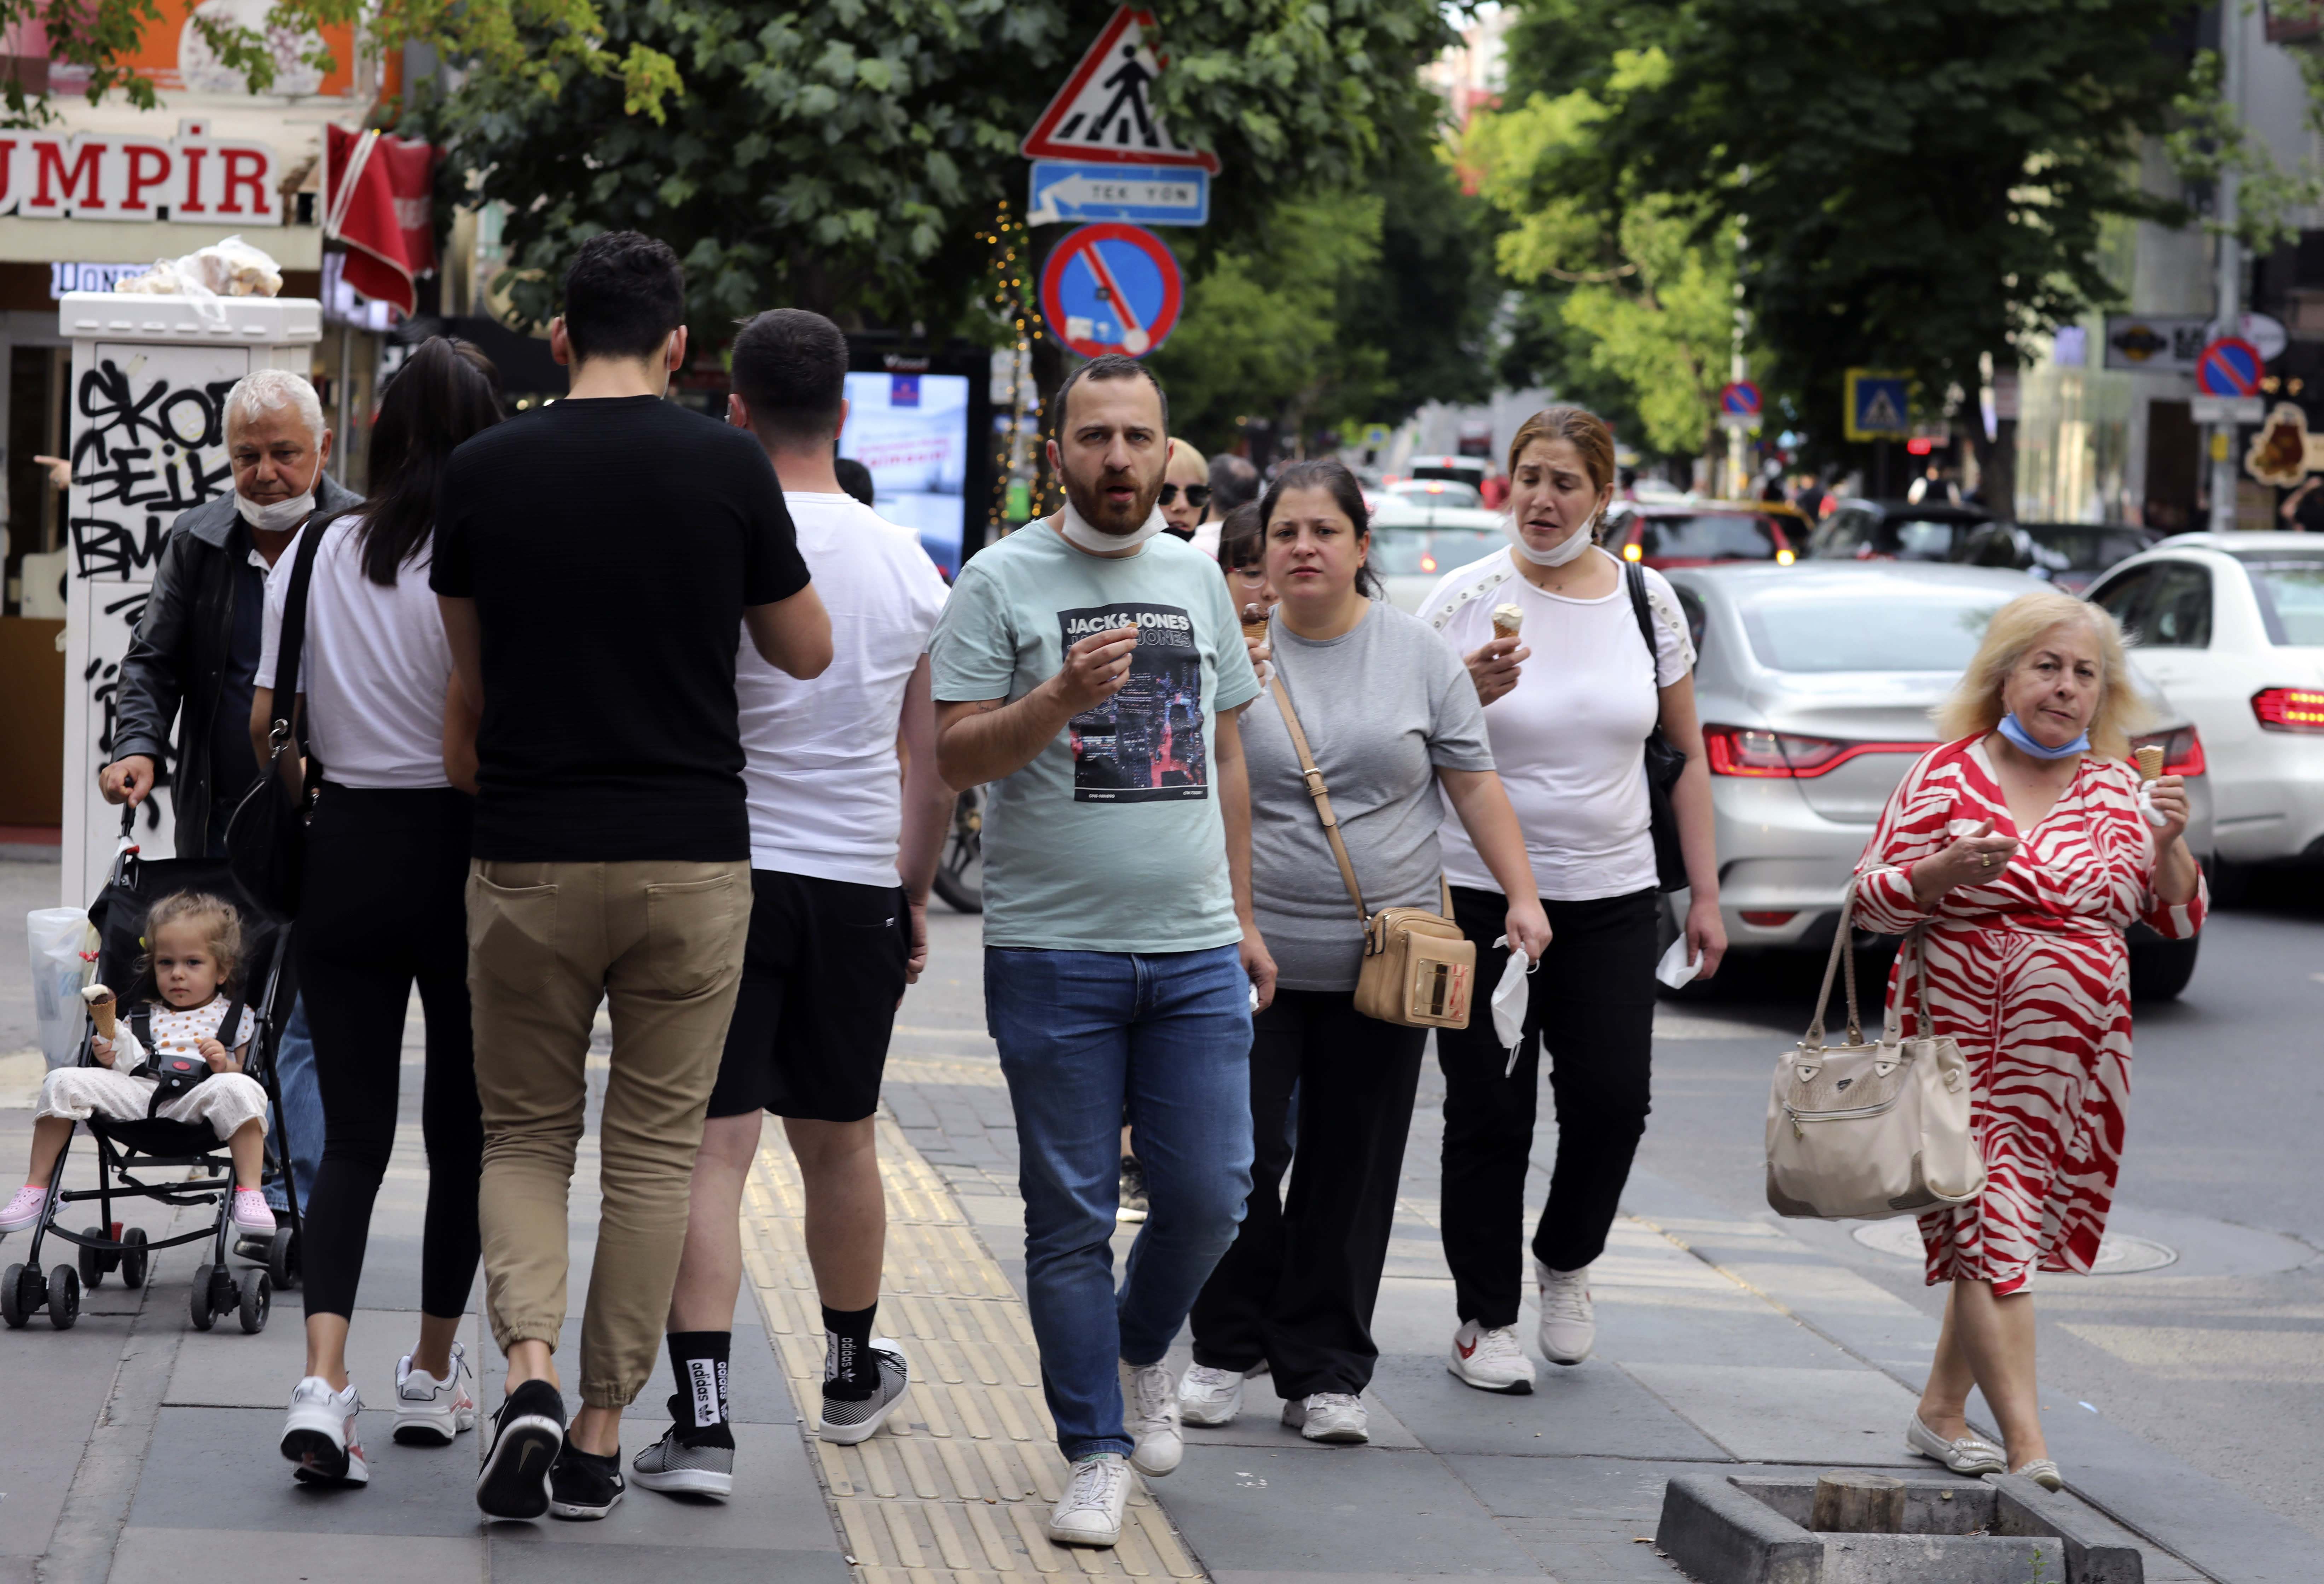 People who are not wearing face masks to protect against the spread of coronavirus, walk in city the centre, in Ankara, Turkey, Sunday, June 21, 2020. Turkish authorities have made the wearing of masks mandatory in three major cities to curb the spread of COVID-19 following an uptick in confirmed cases since the reopening of many businesses.(AP Photo/Burhan Ozbilici)